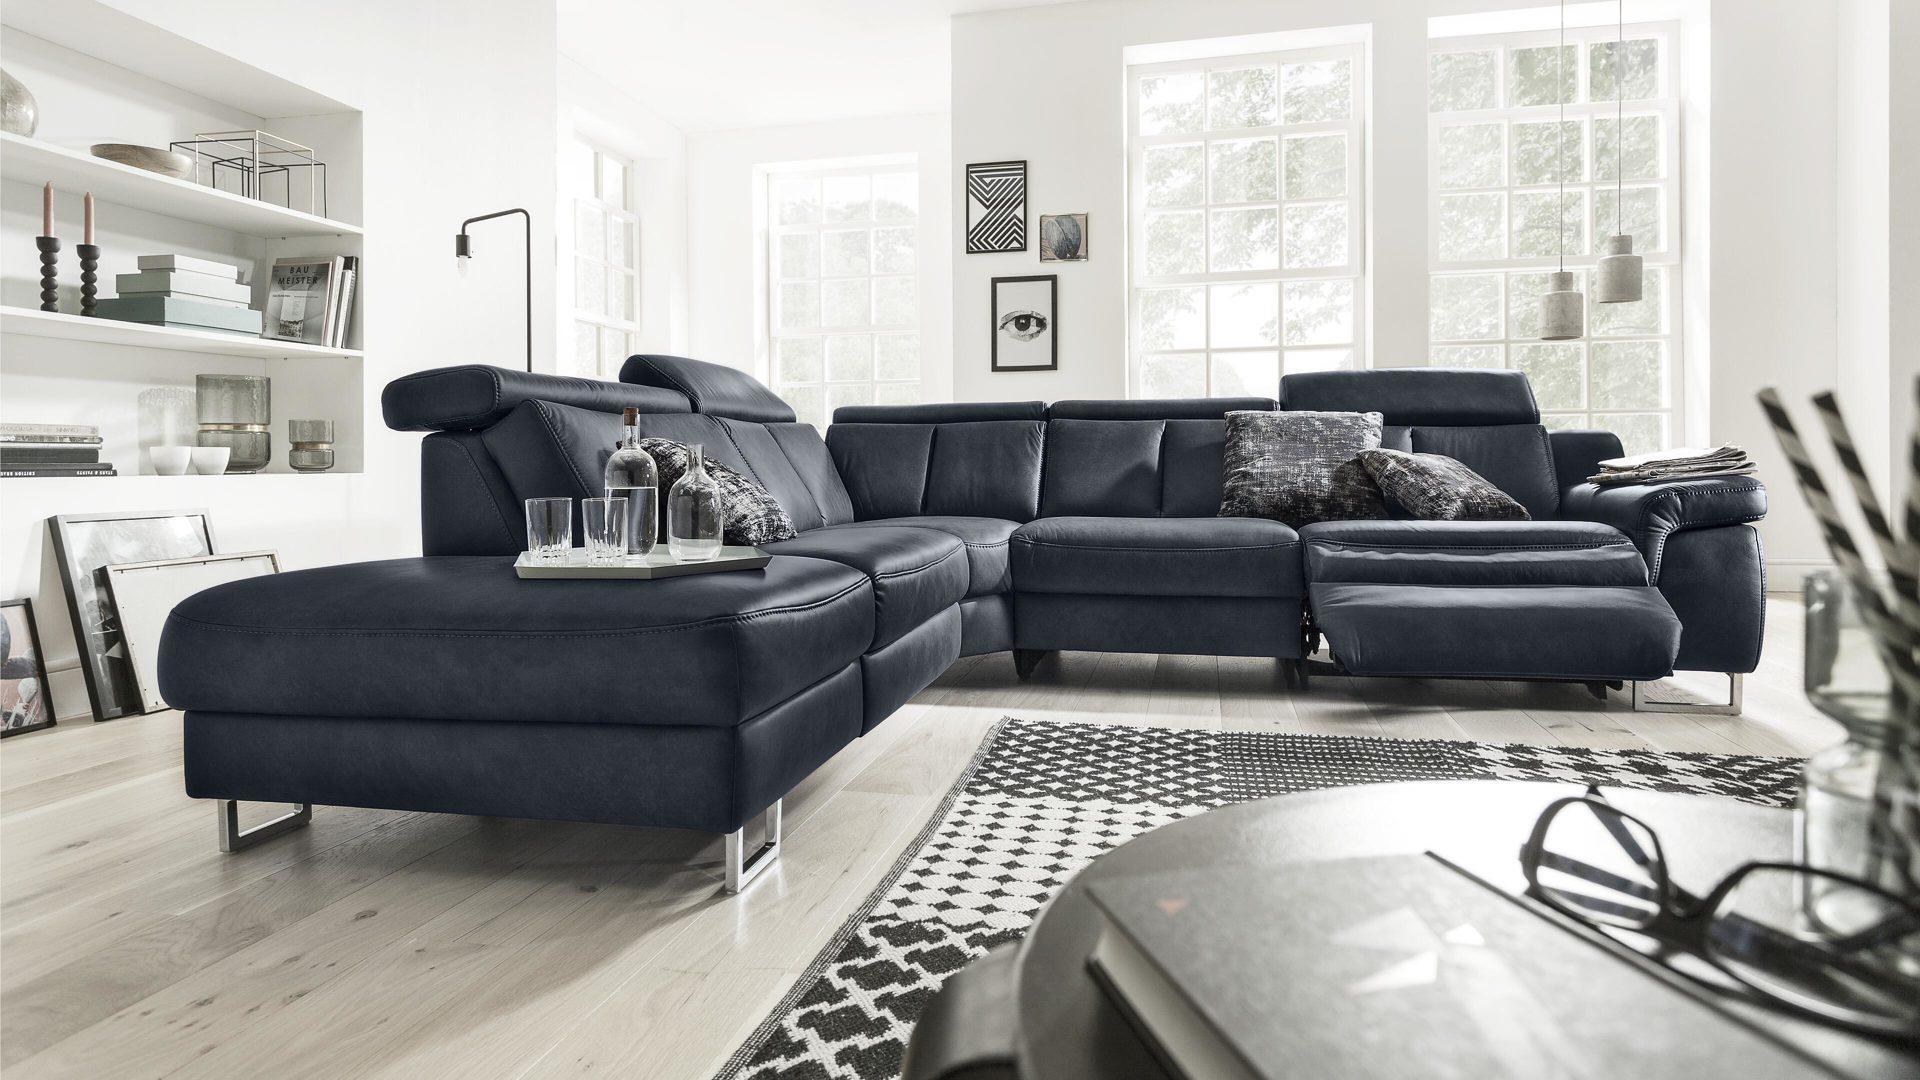 Interliving Sofa Serie 4050 Wohnlandschaft Nachtblaues Longlife